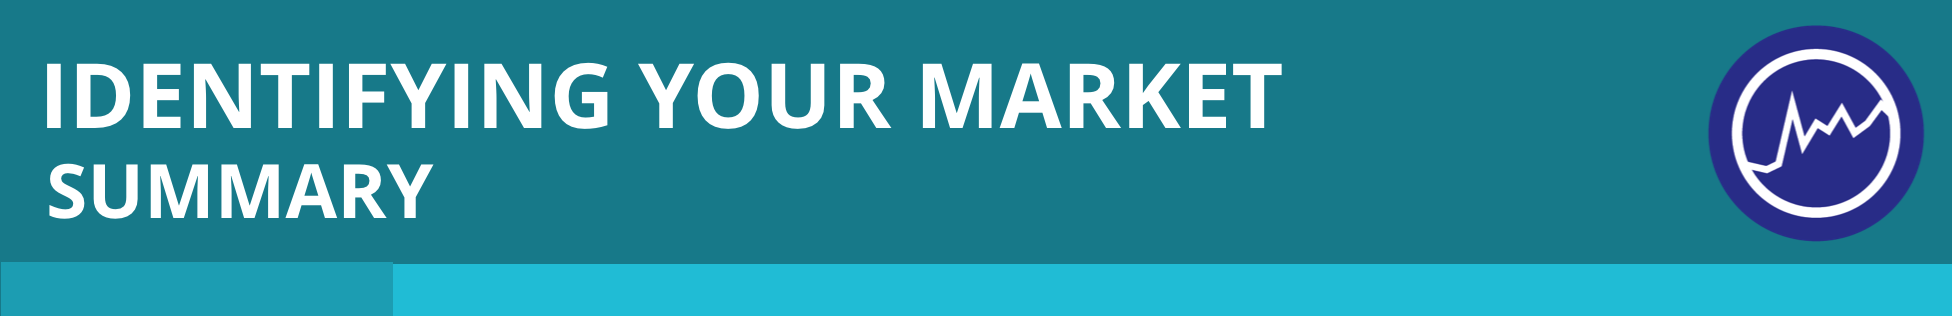 Header for Identifying Your Market Summary